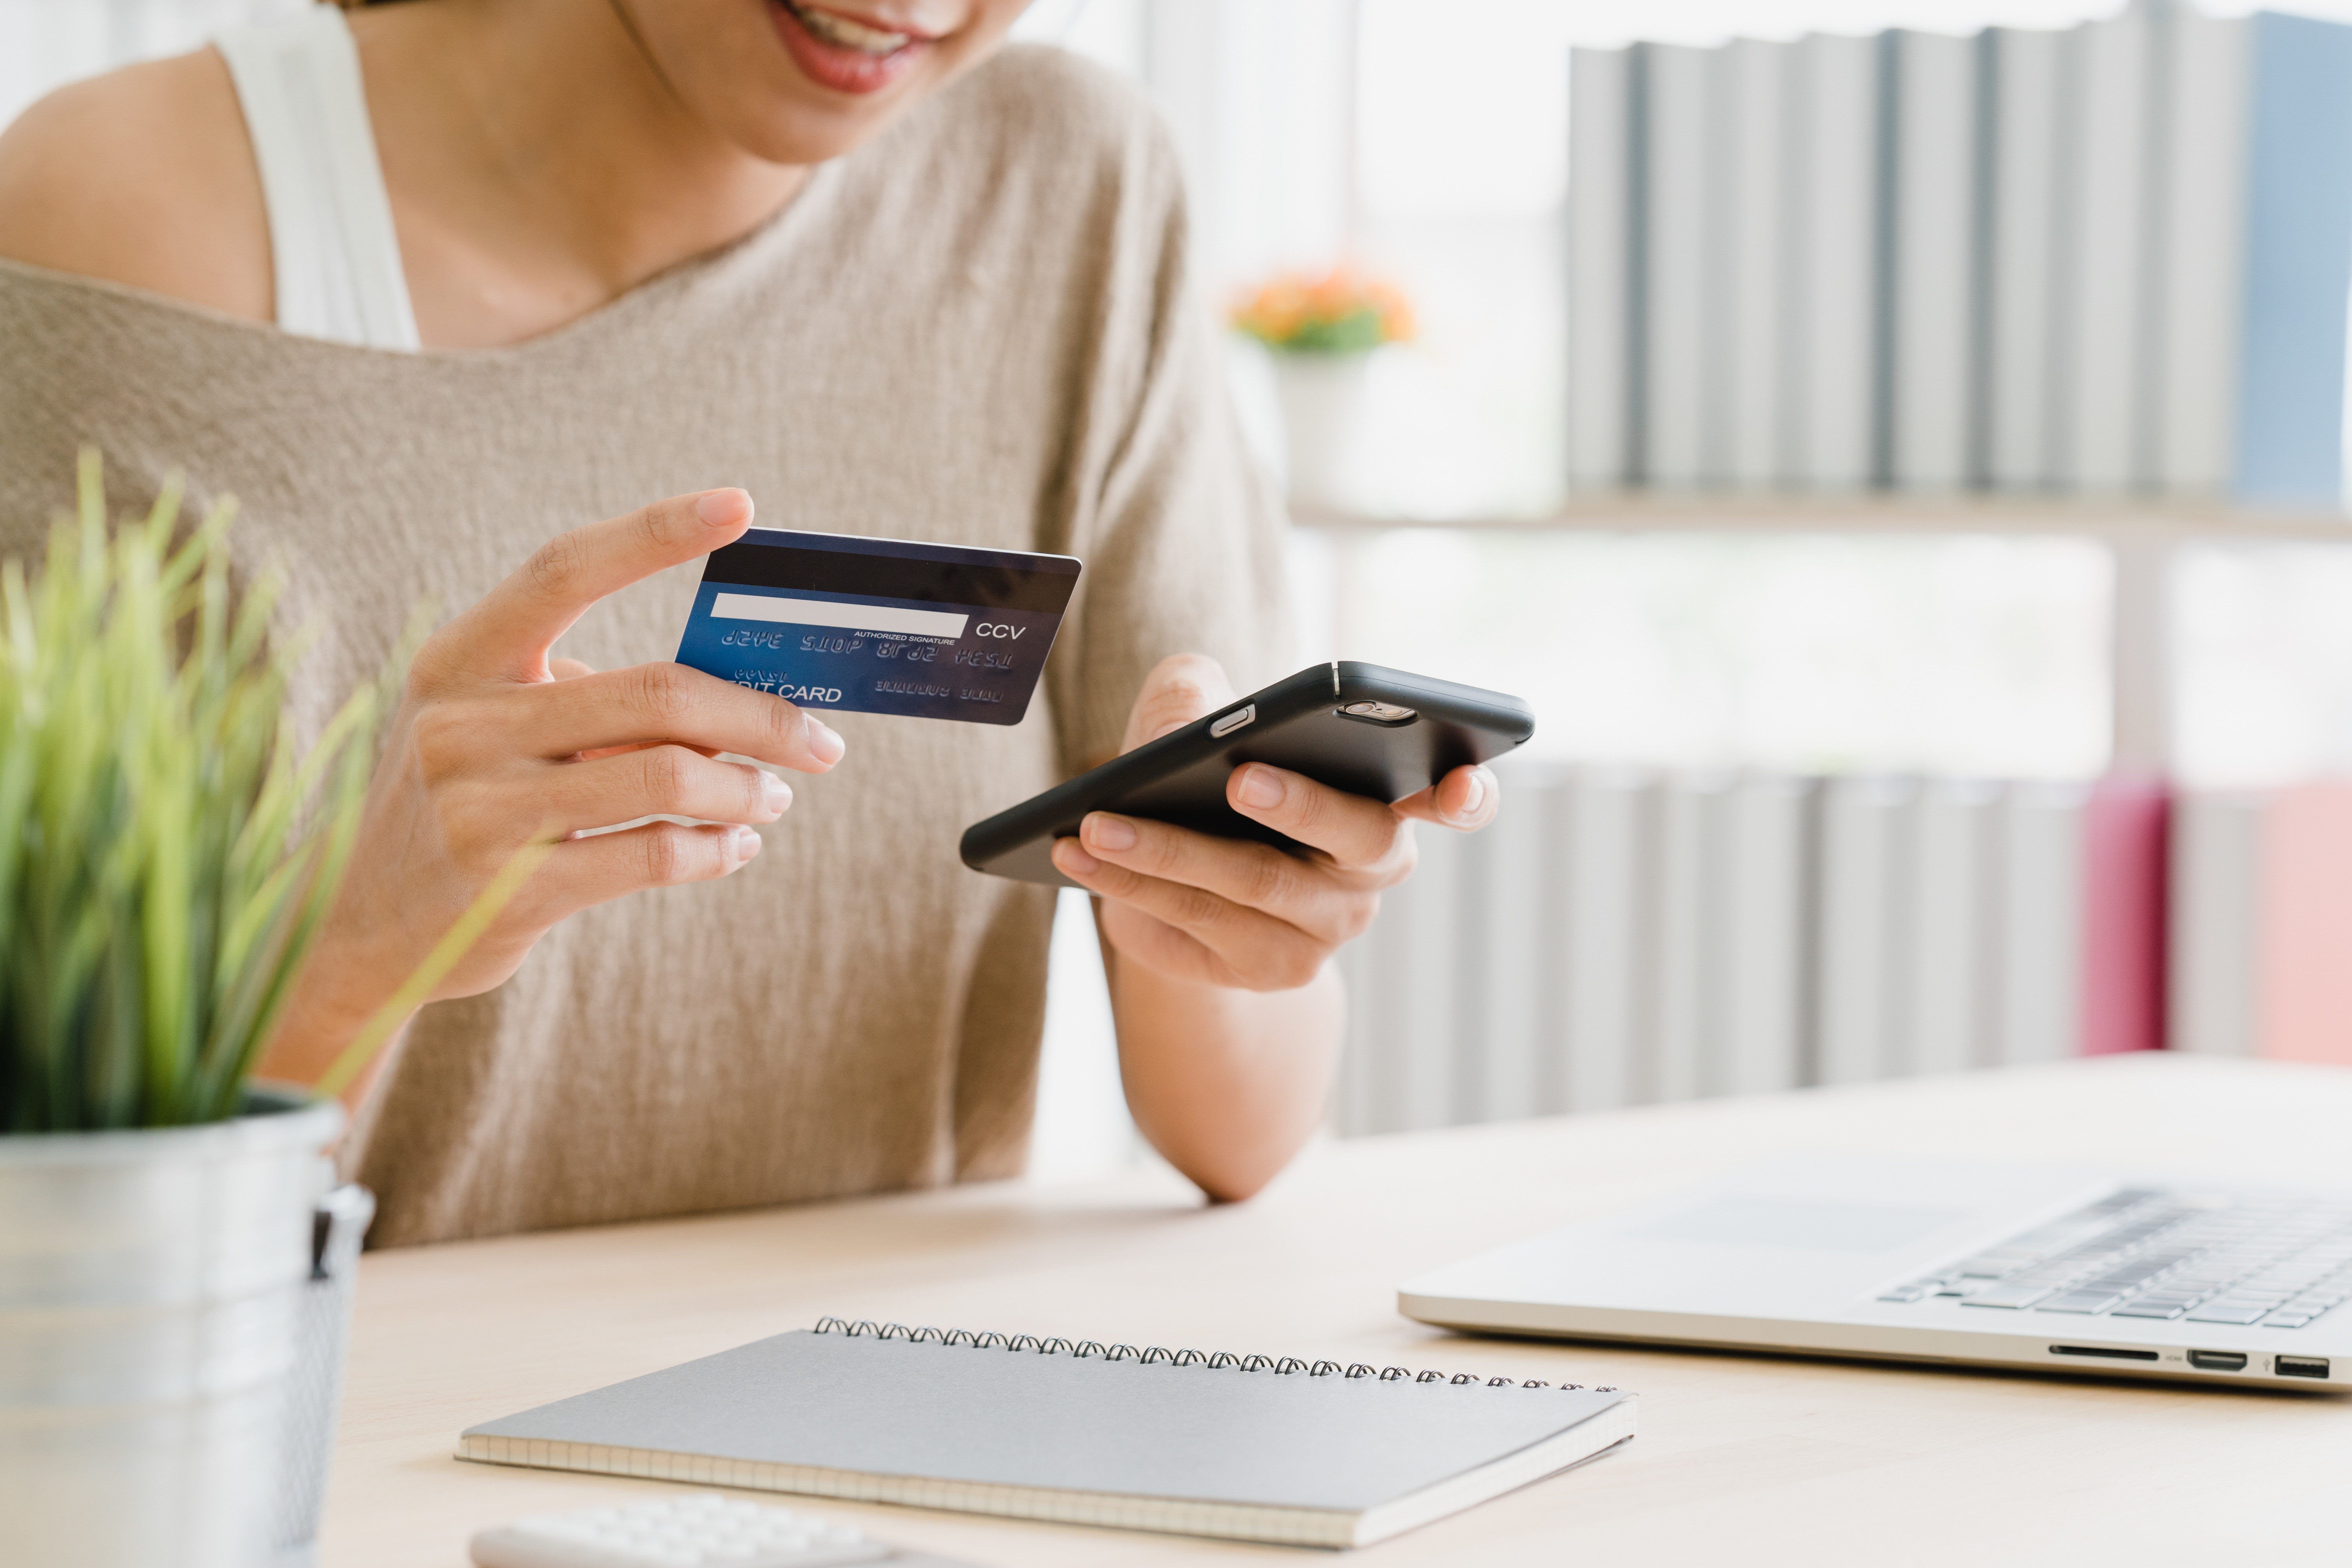 Woman using smartphone buying online shopping by credit card while wear sweater sitting on desk in living room at home.